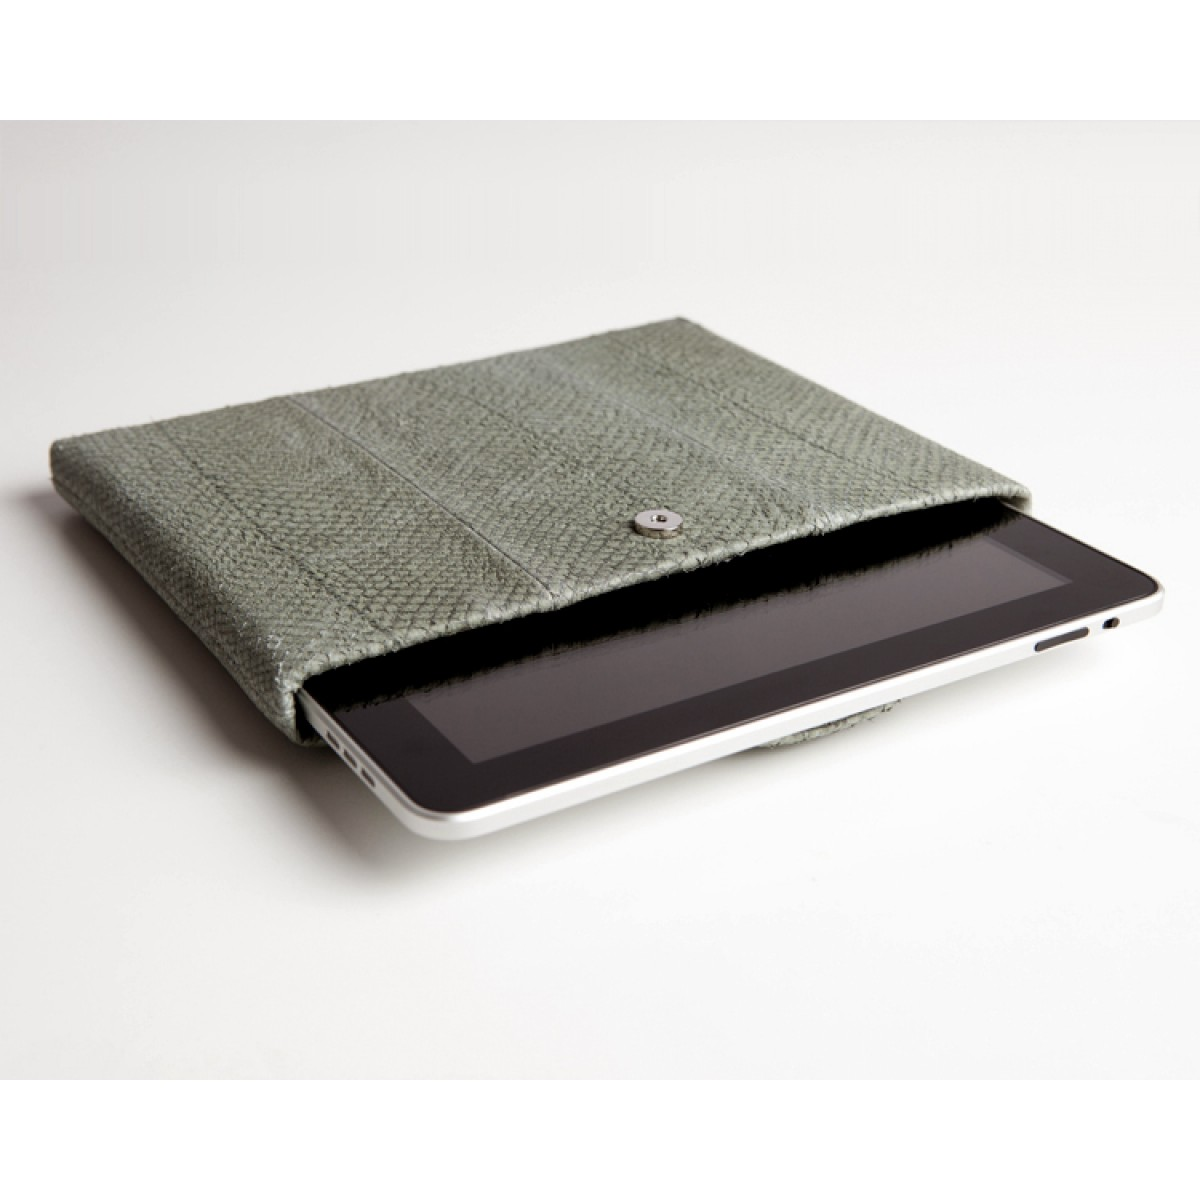 iPad case Lachsleder, reed